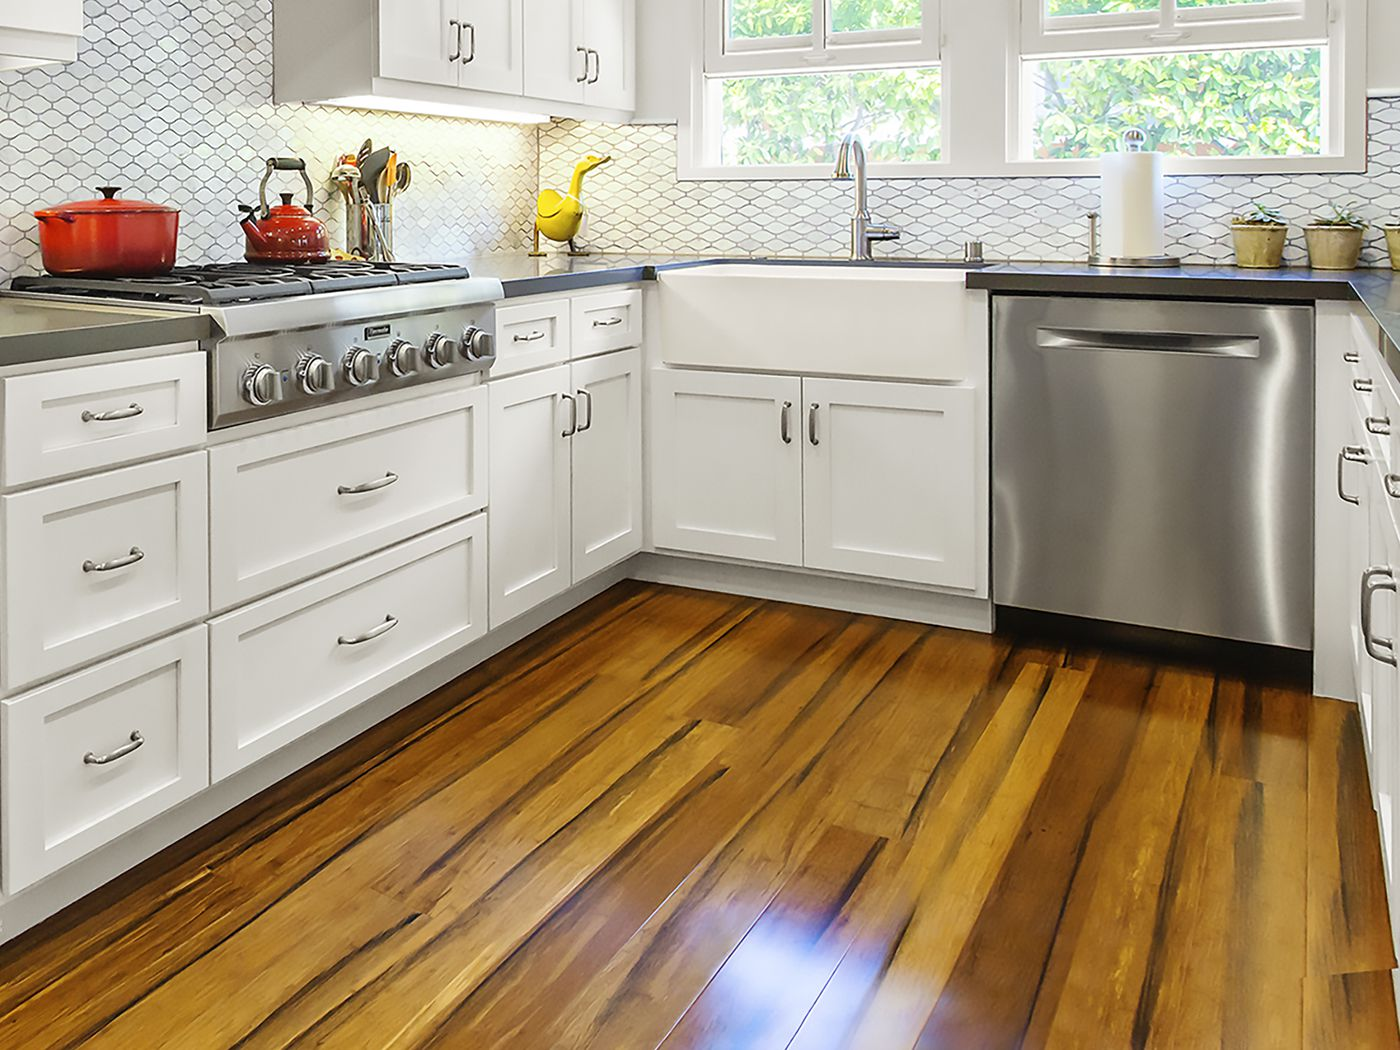 Bamboo Flooring A Buyer S Guide This Old House